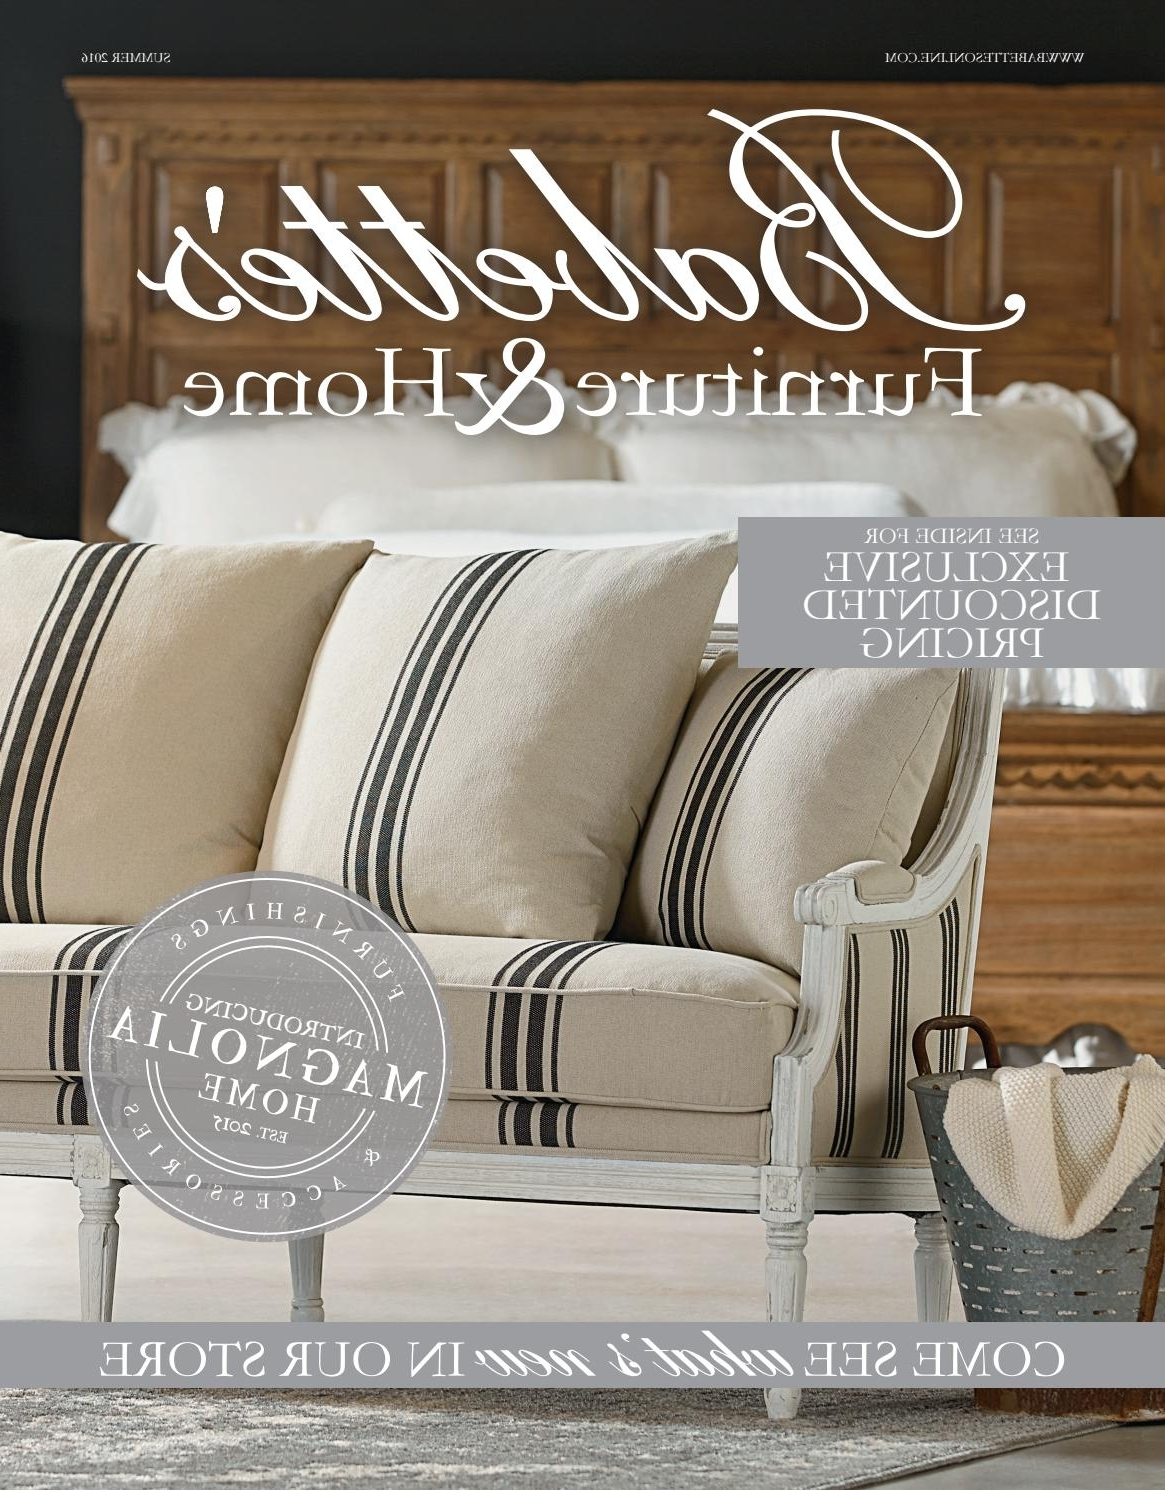 Most Popular Babette's Catalog – Summer 2016Babette's Furniture & Home – Issuu Inside Magnolia Home Taper Turned Bench Gathering Tables With Zinc Top (View 10 of 25)